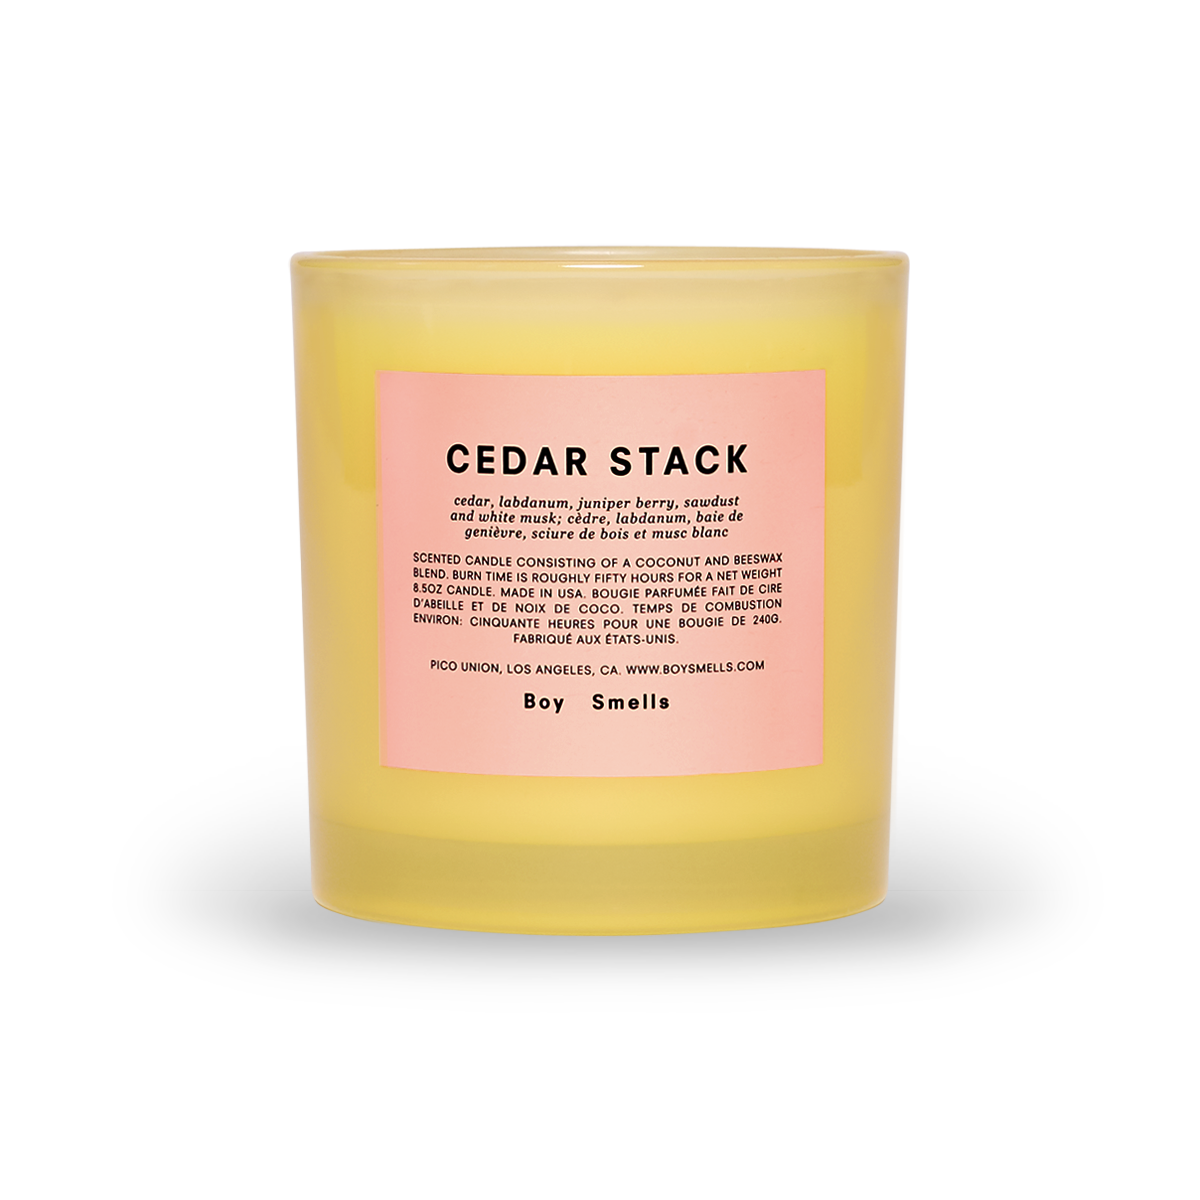 The Pride Cedar Stack Candle